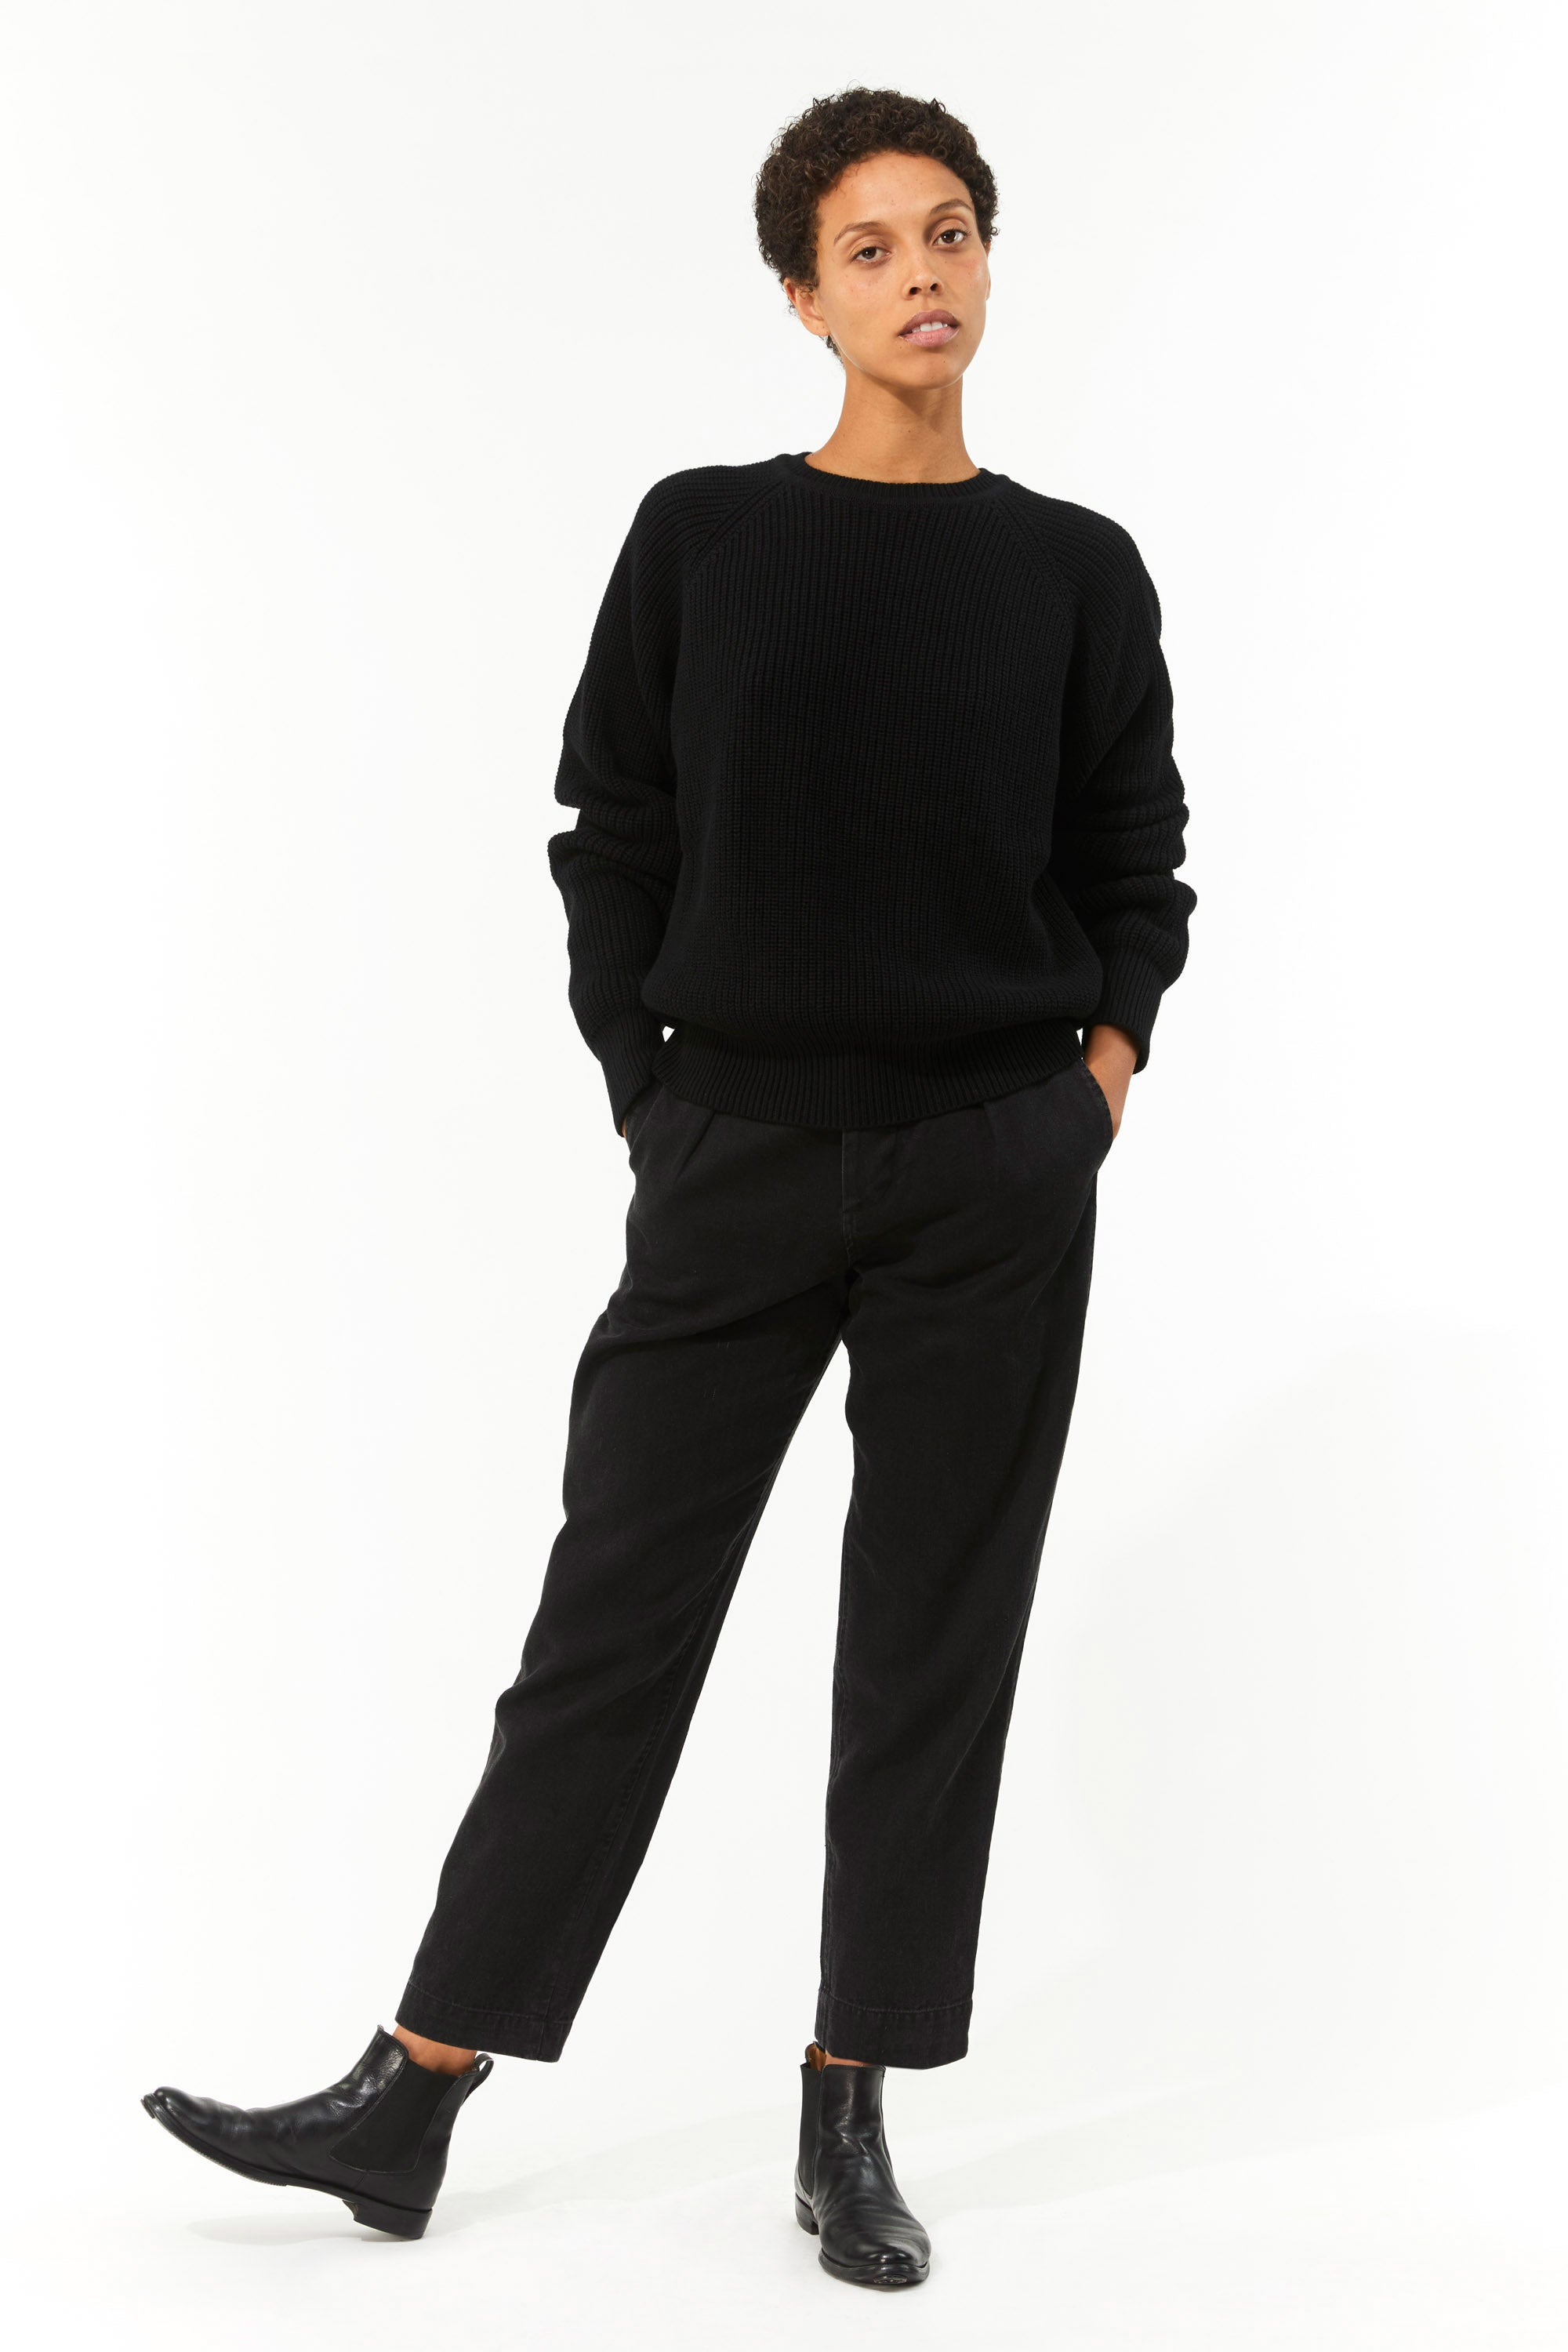 Mara Hoffman Black Avery Sweater in organic cotton (full body)